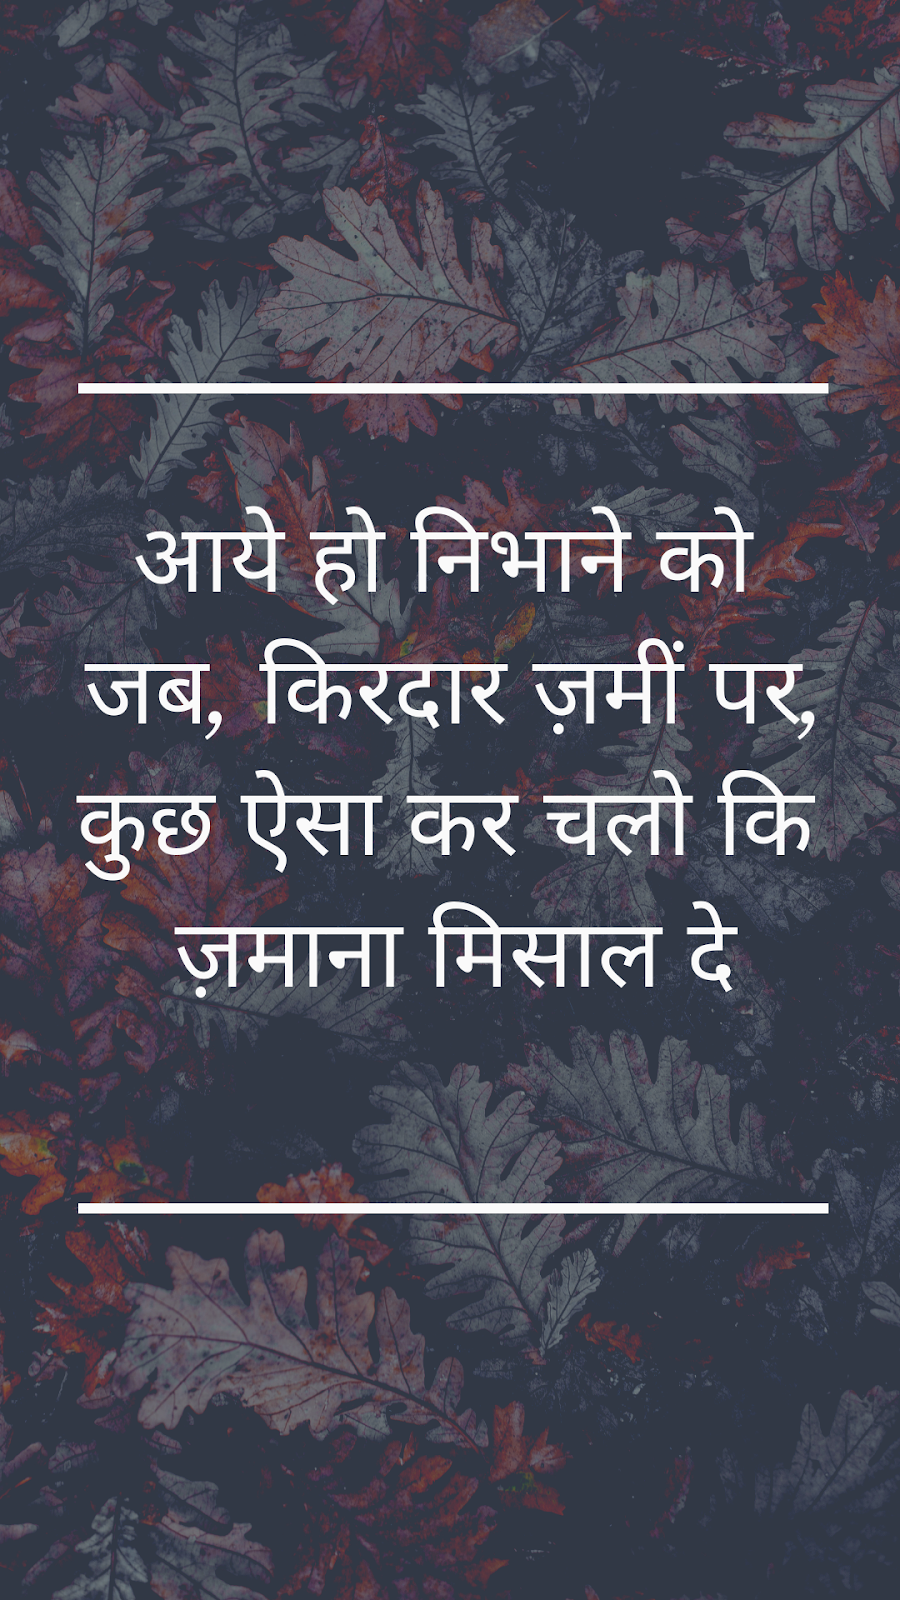 Success Motivational Quotes In Hindi For Students Motivational Pictures